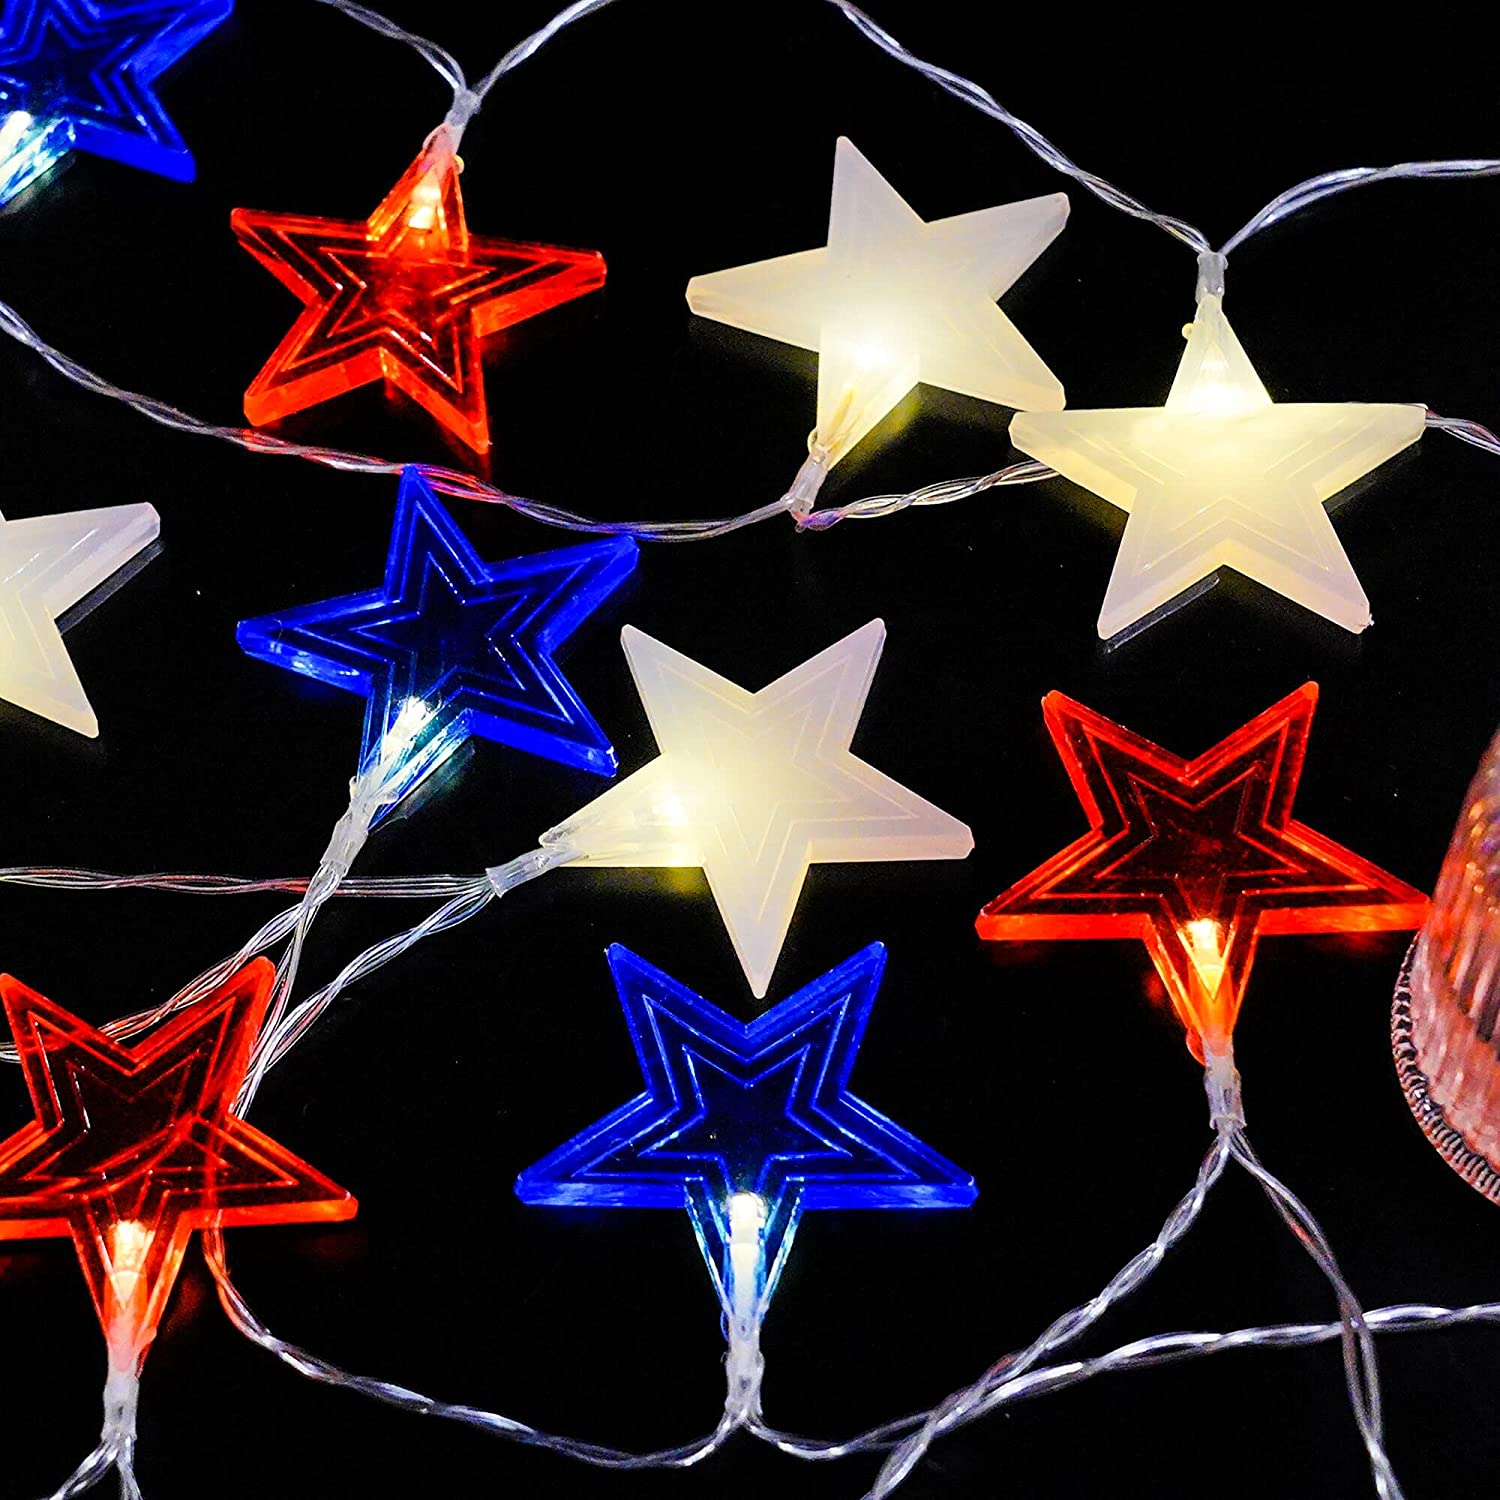 Funpeny Independence Day String Lights, 18 LED 9.5 Feet American Stars String Lights for July 4th Day, Battery Operated Patriotic Memorial Day 4th of July Red White and Blue Decor